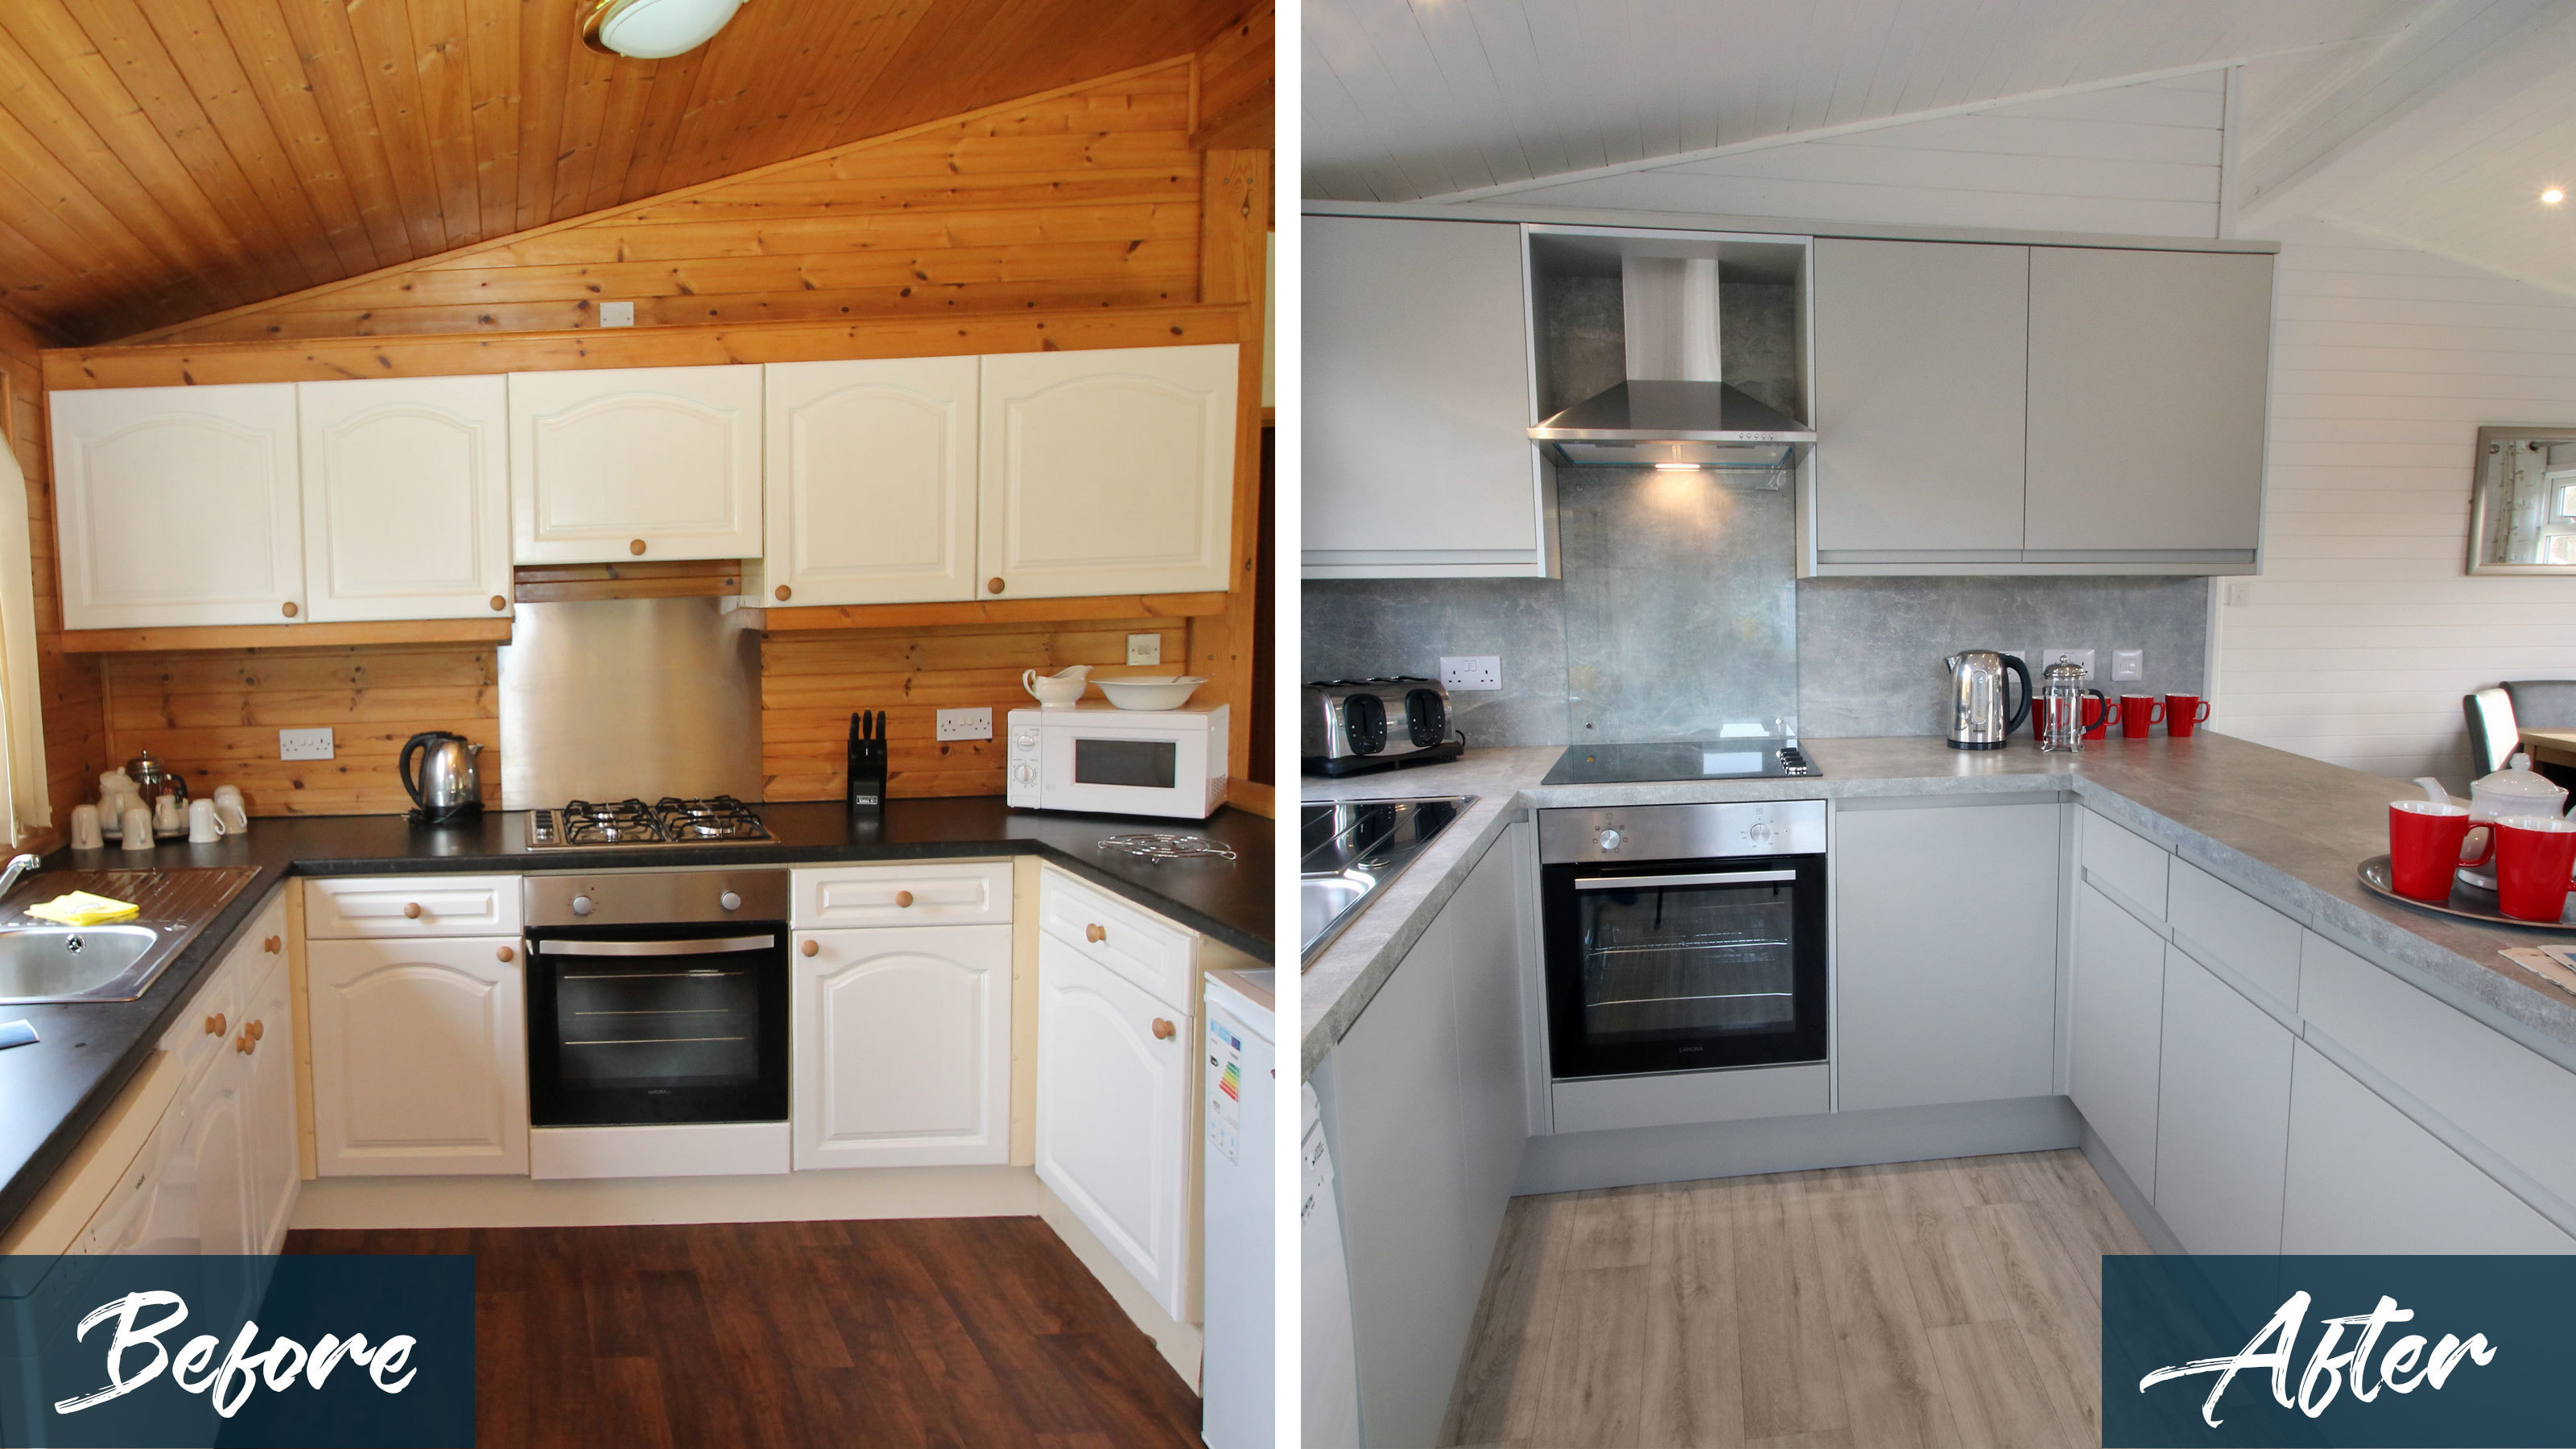 Lodge-renovations-kitchen-before-and-after